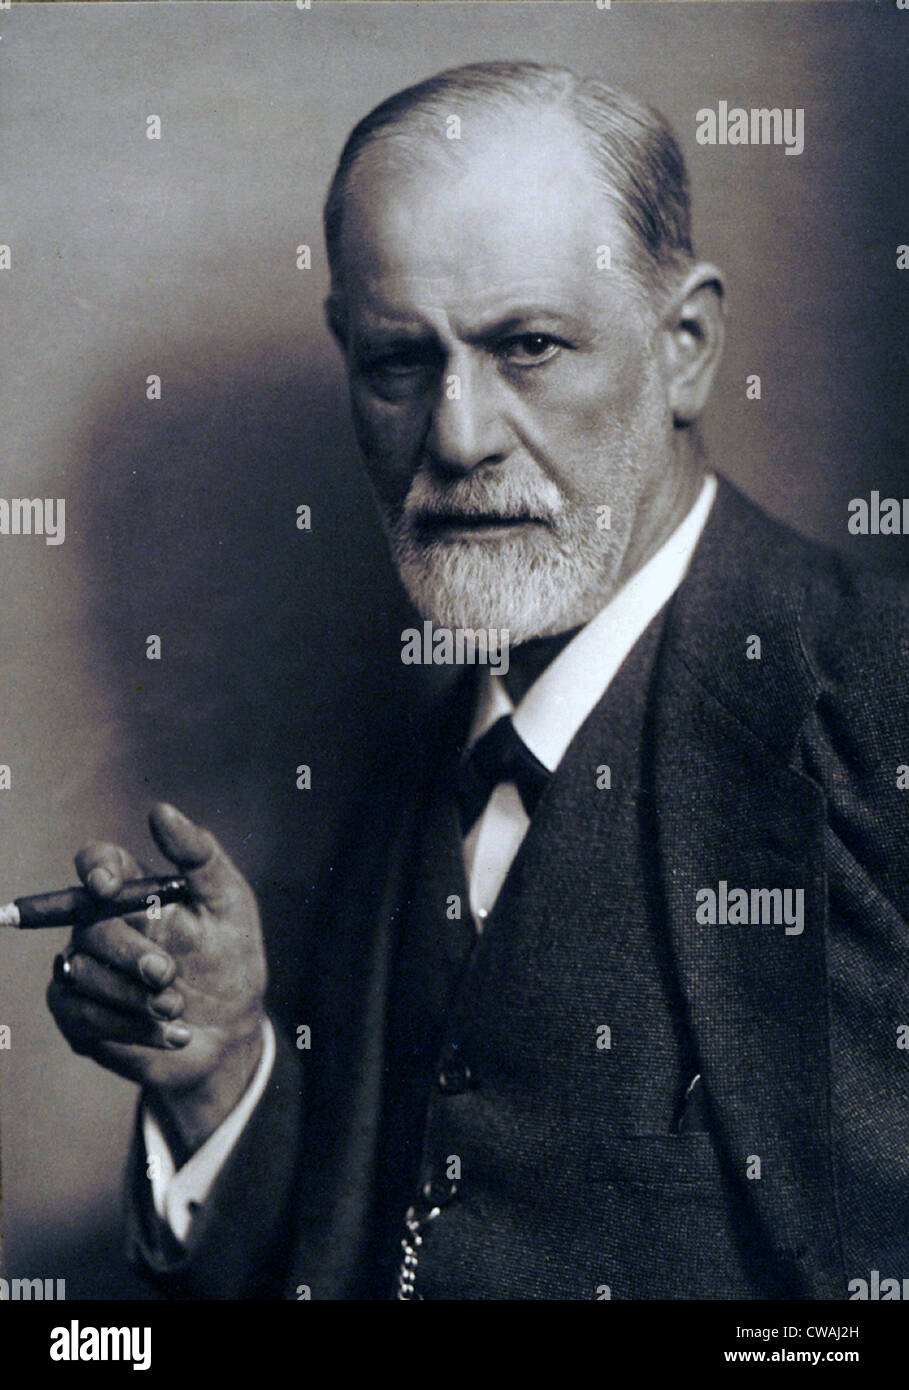 Sigmund Freud (1856-1939) smoking cigar in a classic early 1920s portrait. - Stock Image